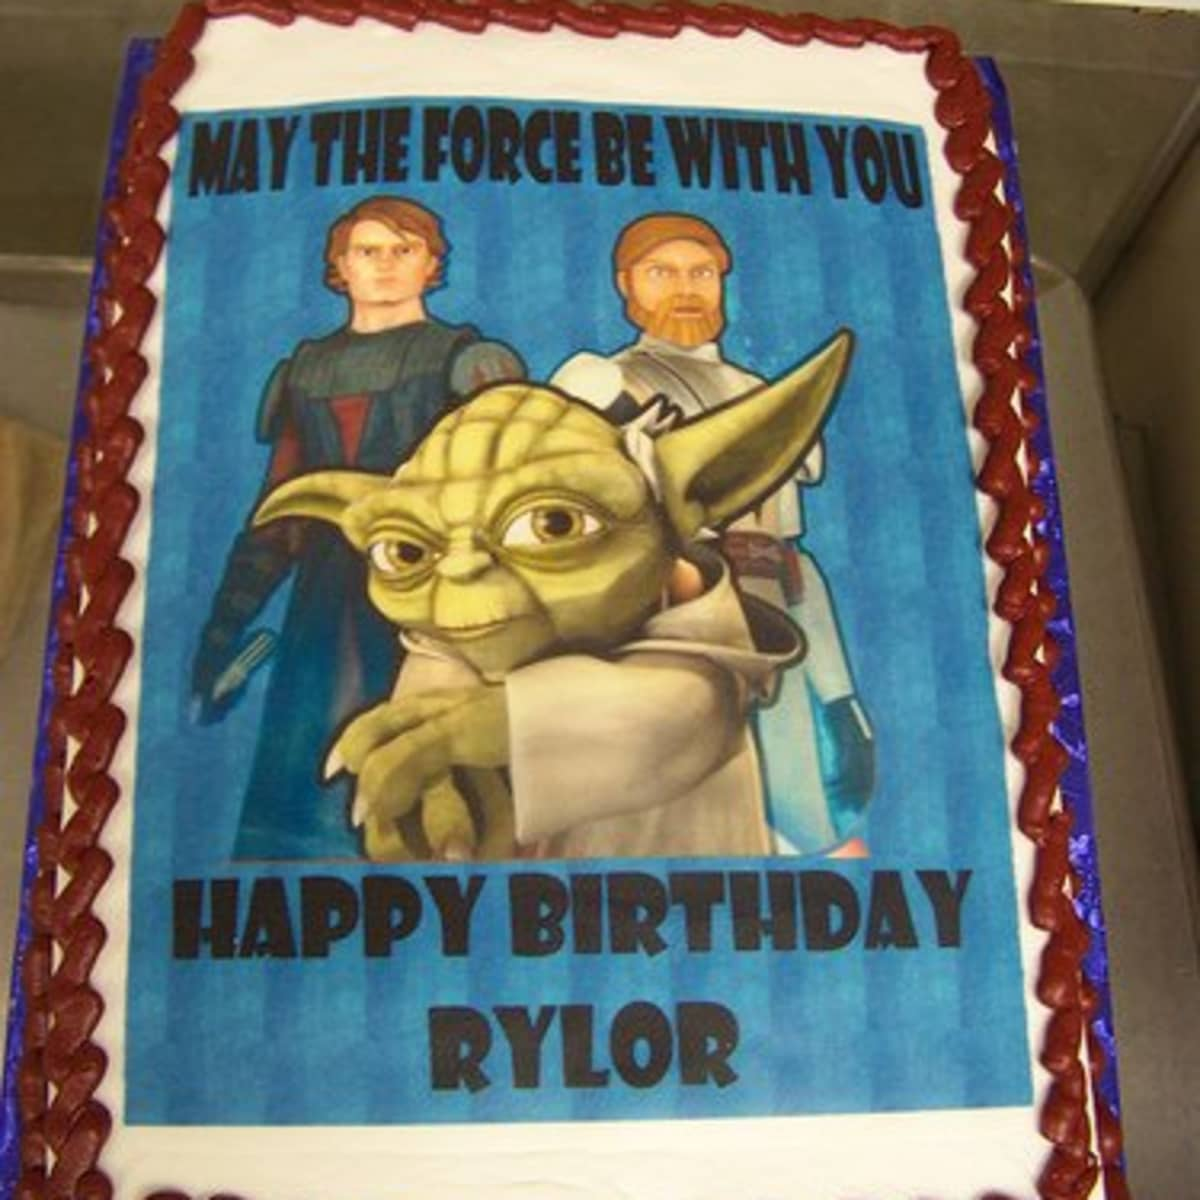 Star Wars Cake And Cupcake Ideas For Parties Delishably